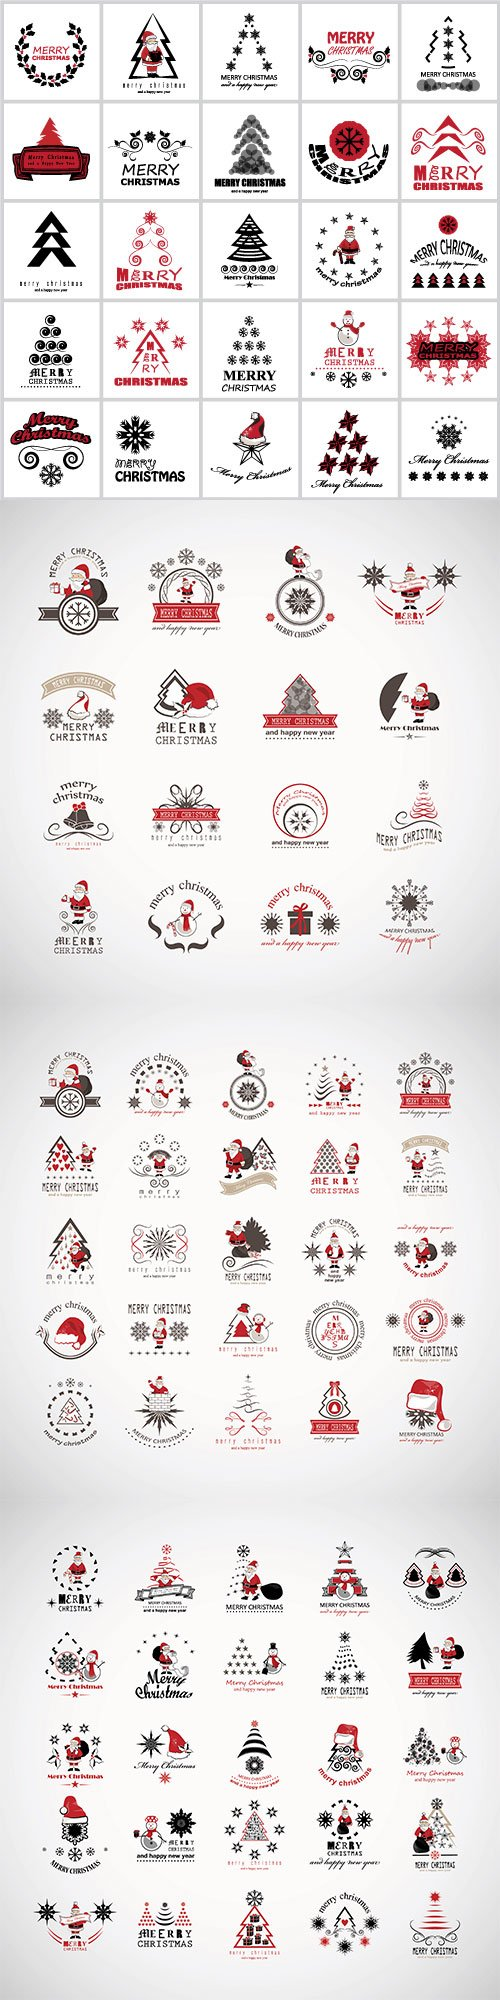 Christmas icons and elements vector set